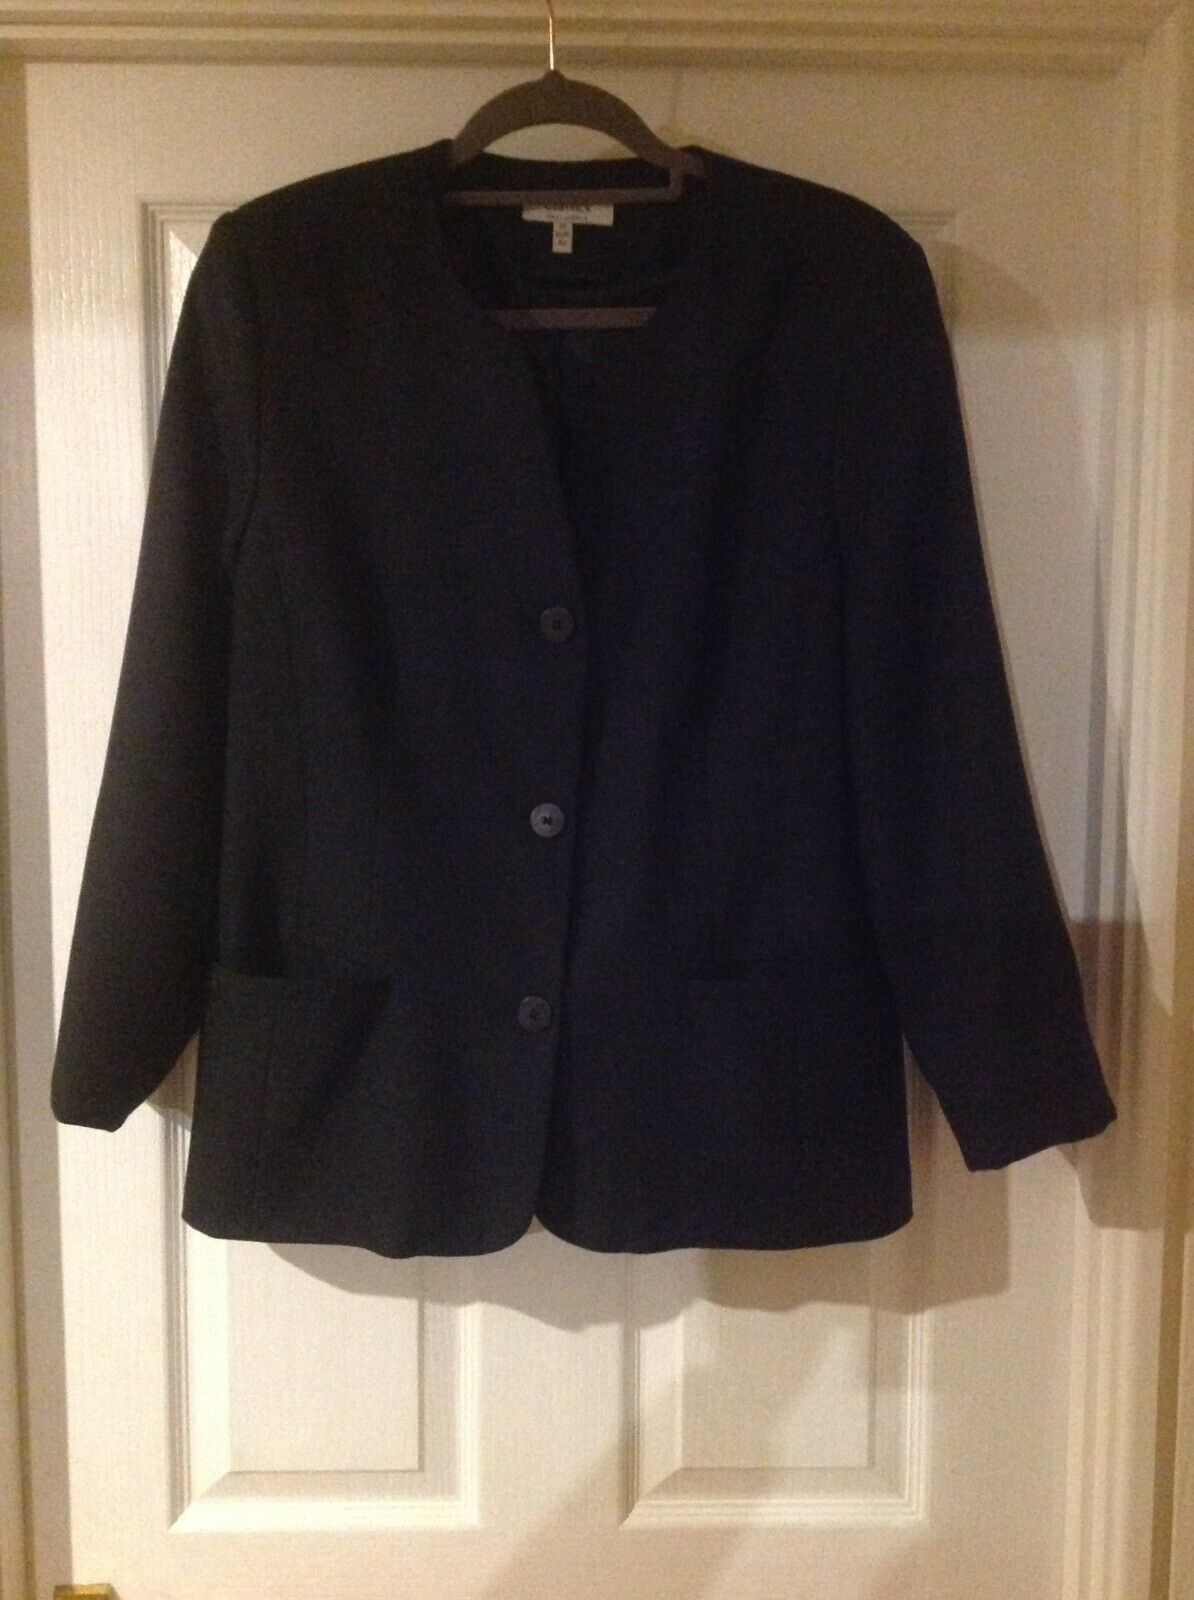 NEW Black Semi Fitted Collarless Lined Jacket Size 16 By FIRST AVENUE CLASSICS